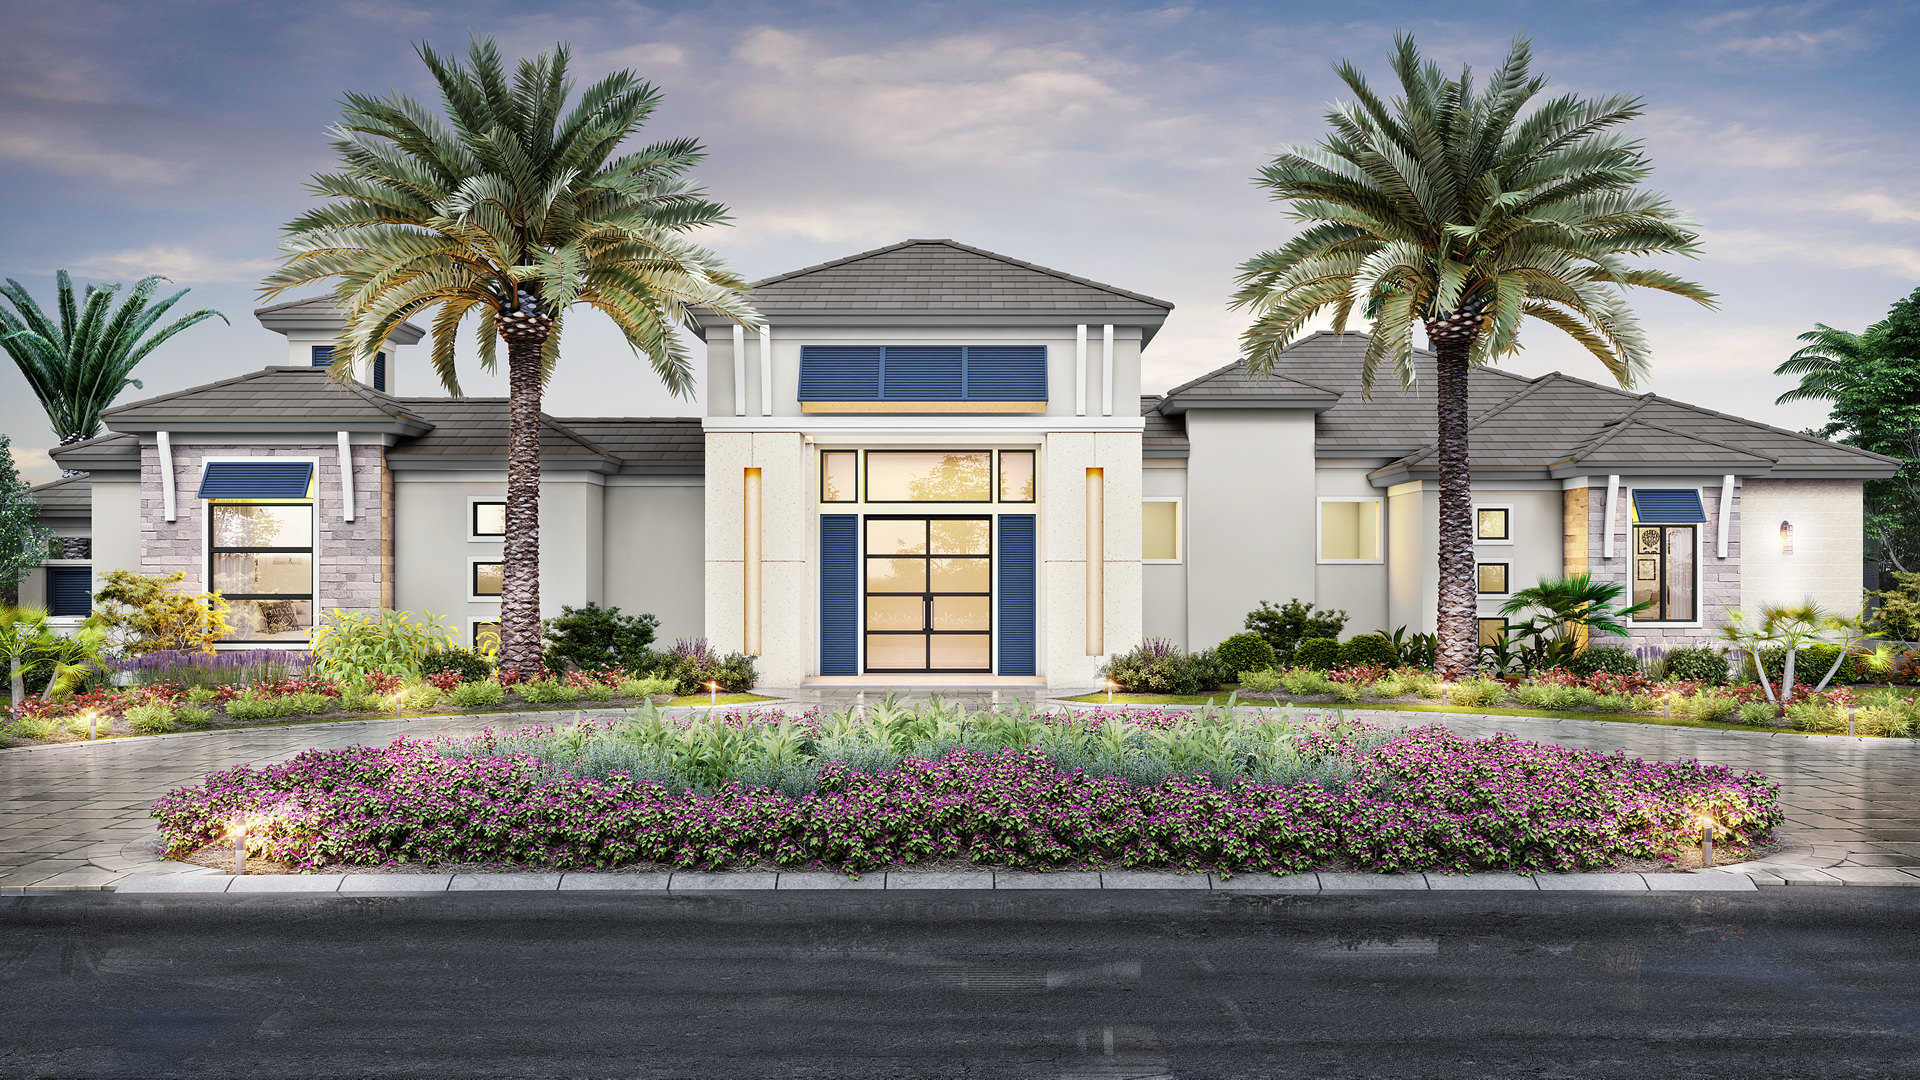 Clive Daniel Home to Install Furnishings for New McGarvey Oasis Model